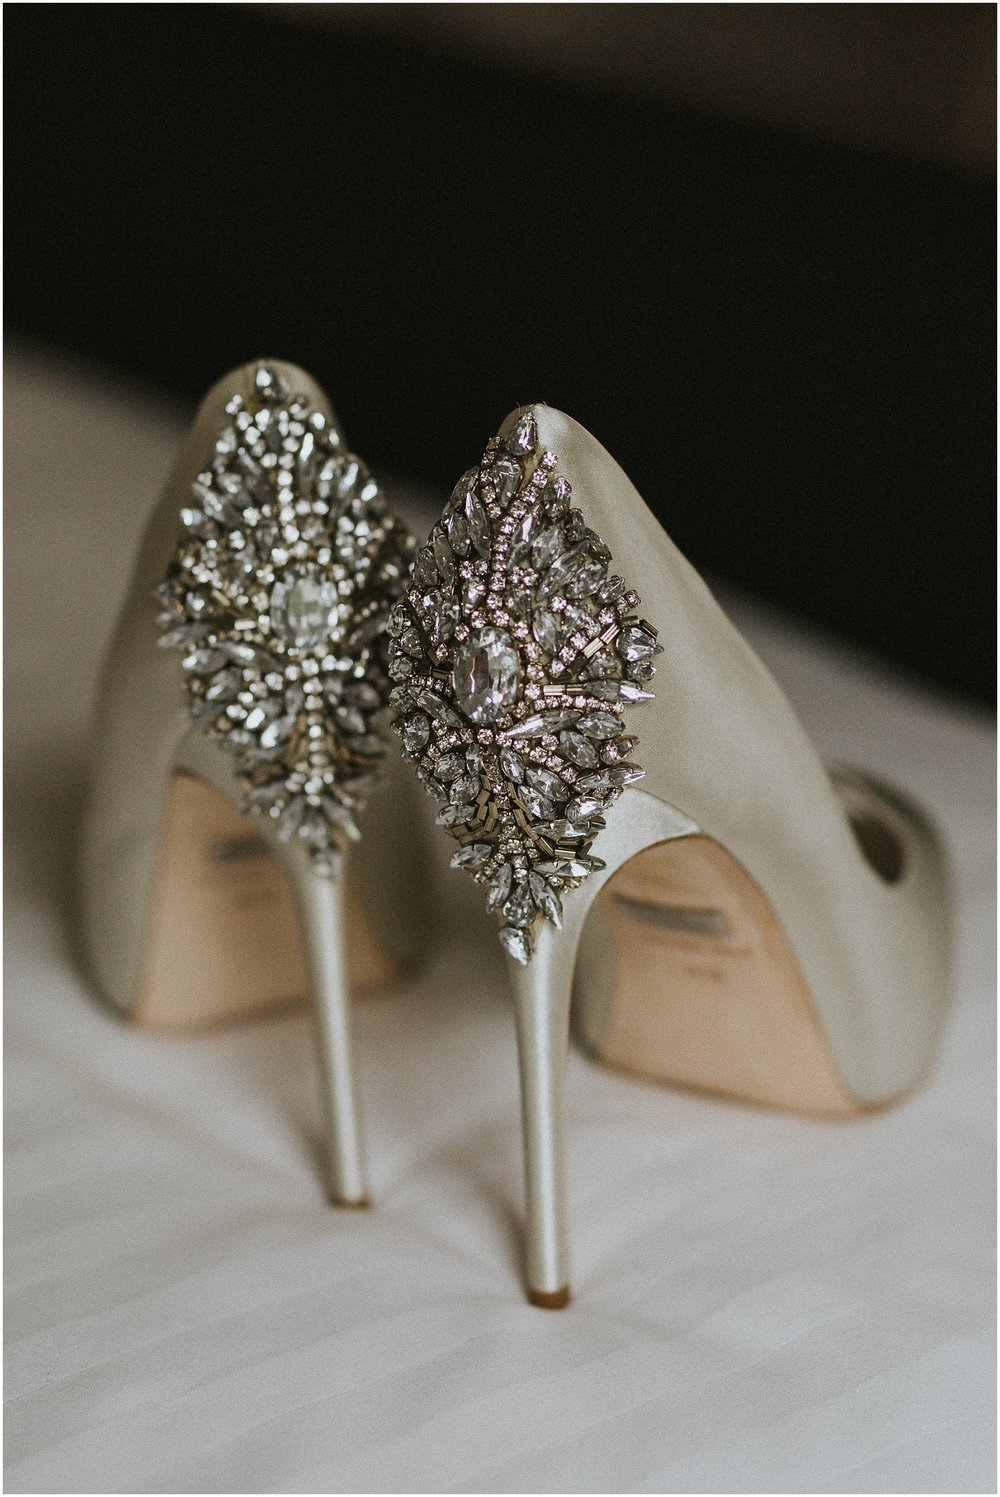 Badgley Mischka diamond wedding shoes at The Historic Acres of Hershey in Hershey Pennsylvania